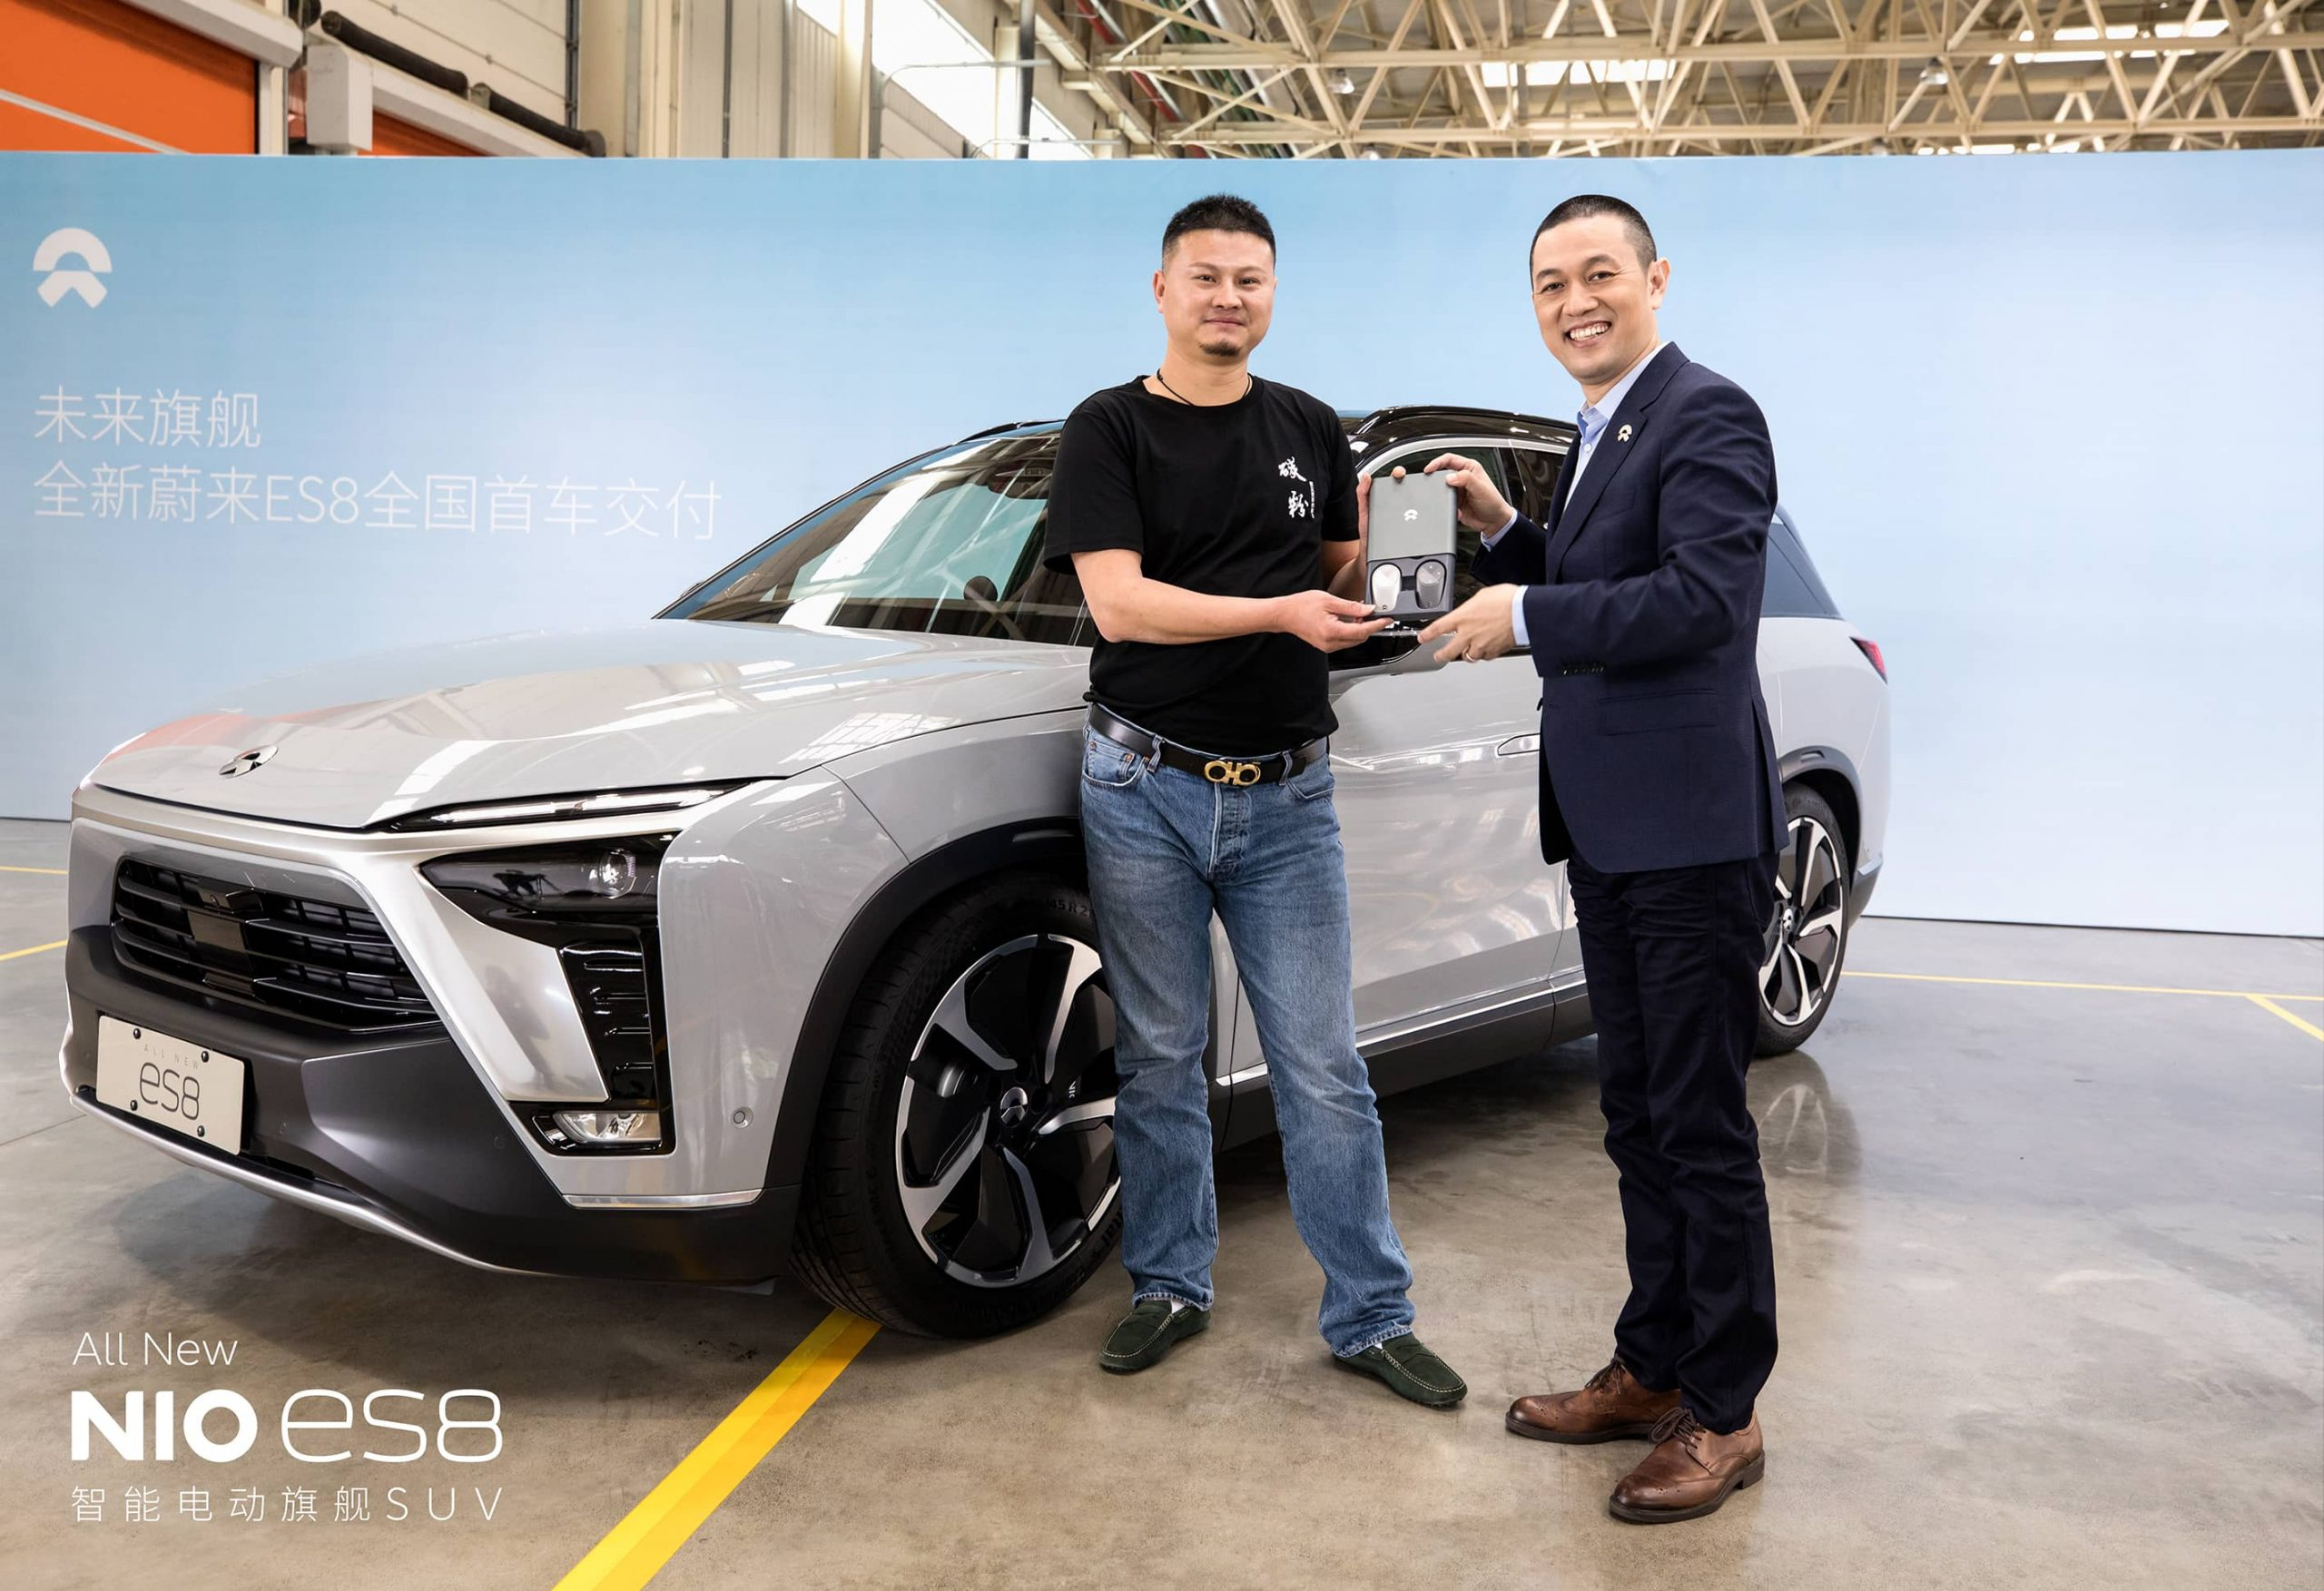 Refreshed Nio Es8 Electric Suv Rolls Off The Production Line In China